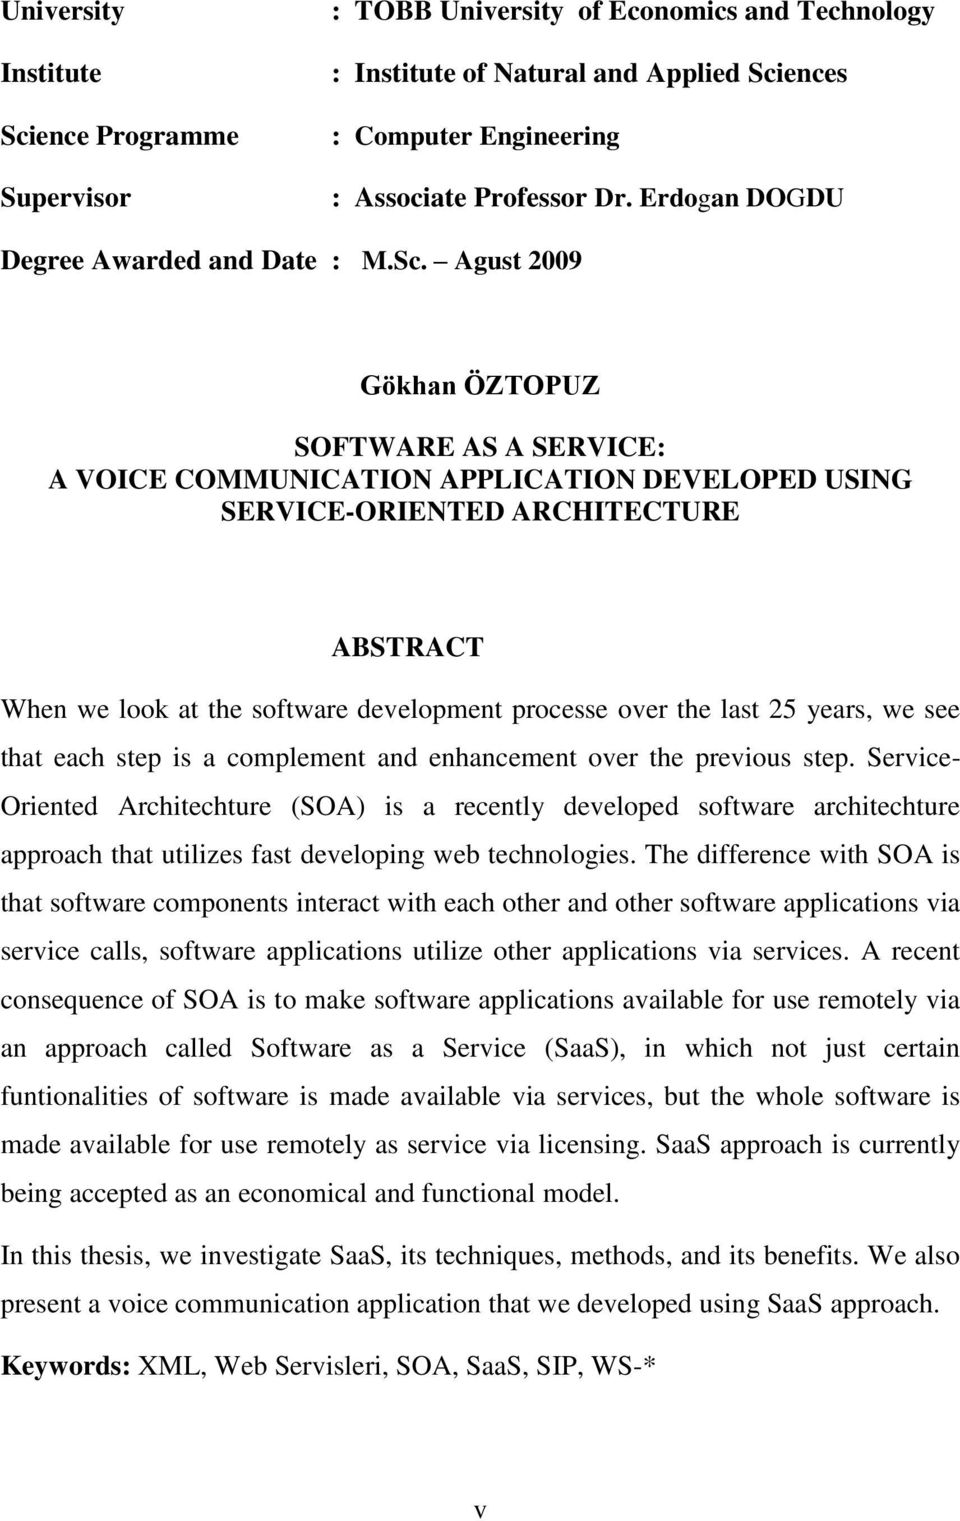 Agust 2009 Gökhan ÖZTOPUZ SOFTWARE AS A SERVICE: A VOICE COMMUNICATION APPLICATION DEVELOPED USING SERVICE-ORIENTED ARCHITECTURE ABSTRACT When we look at the software development processe over the